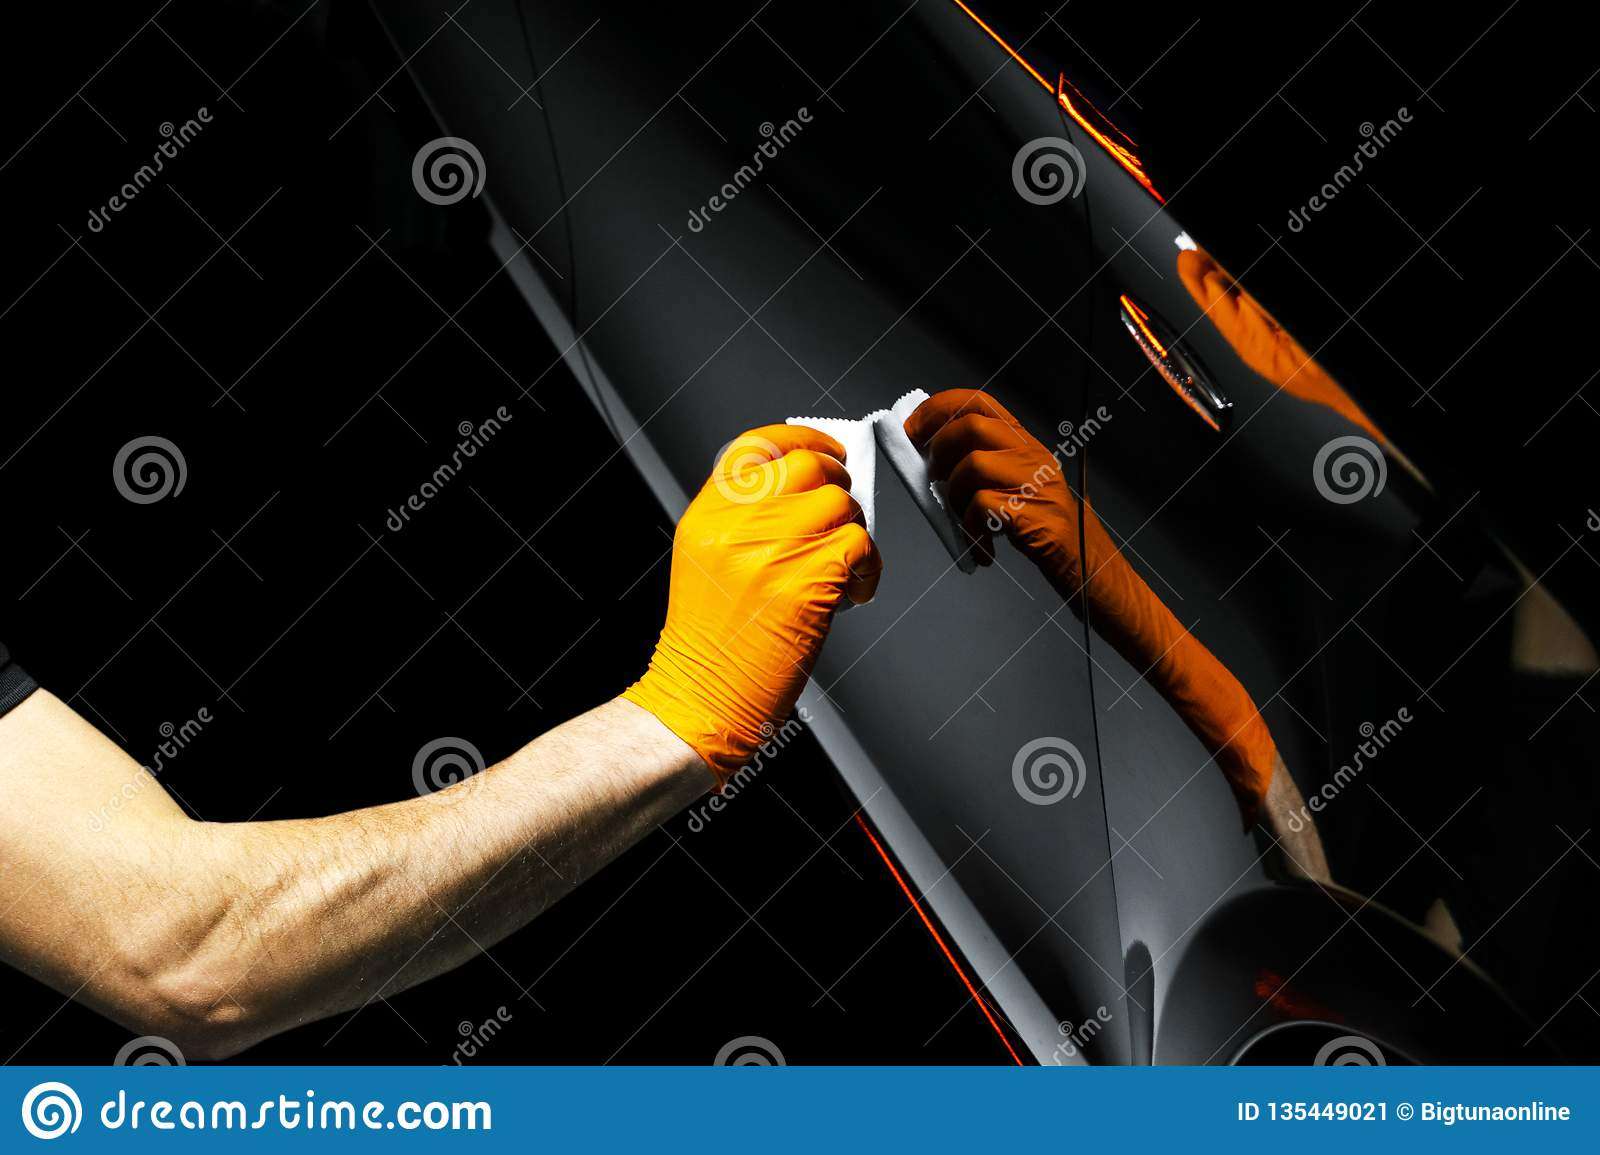 Car polish wax worker hands polishing car. Buffing and polishing vehicle with ceramic. Car detailing. Man holds a polisher in the